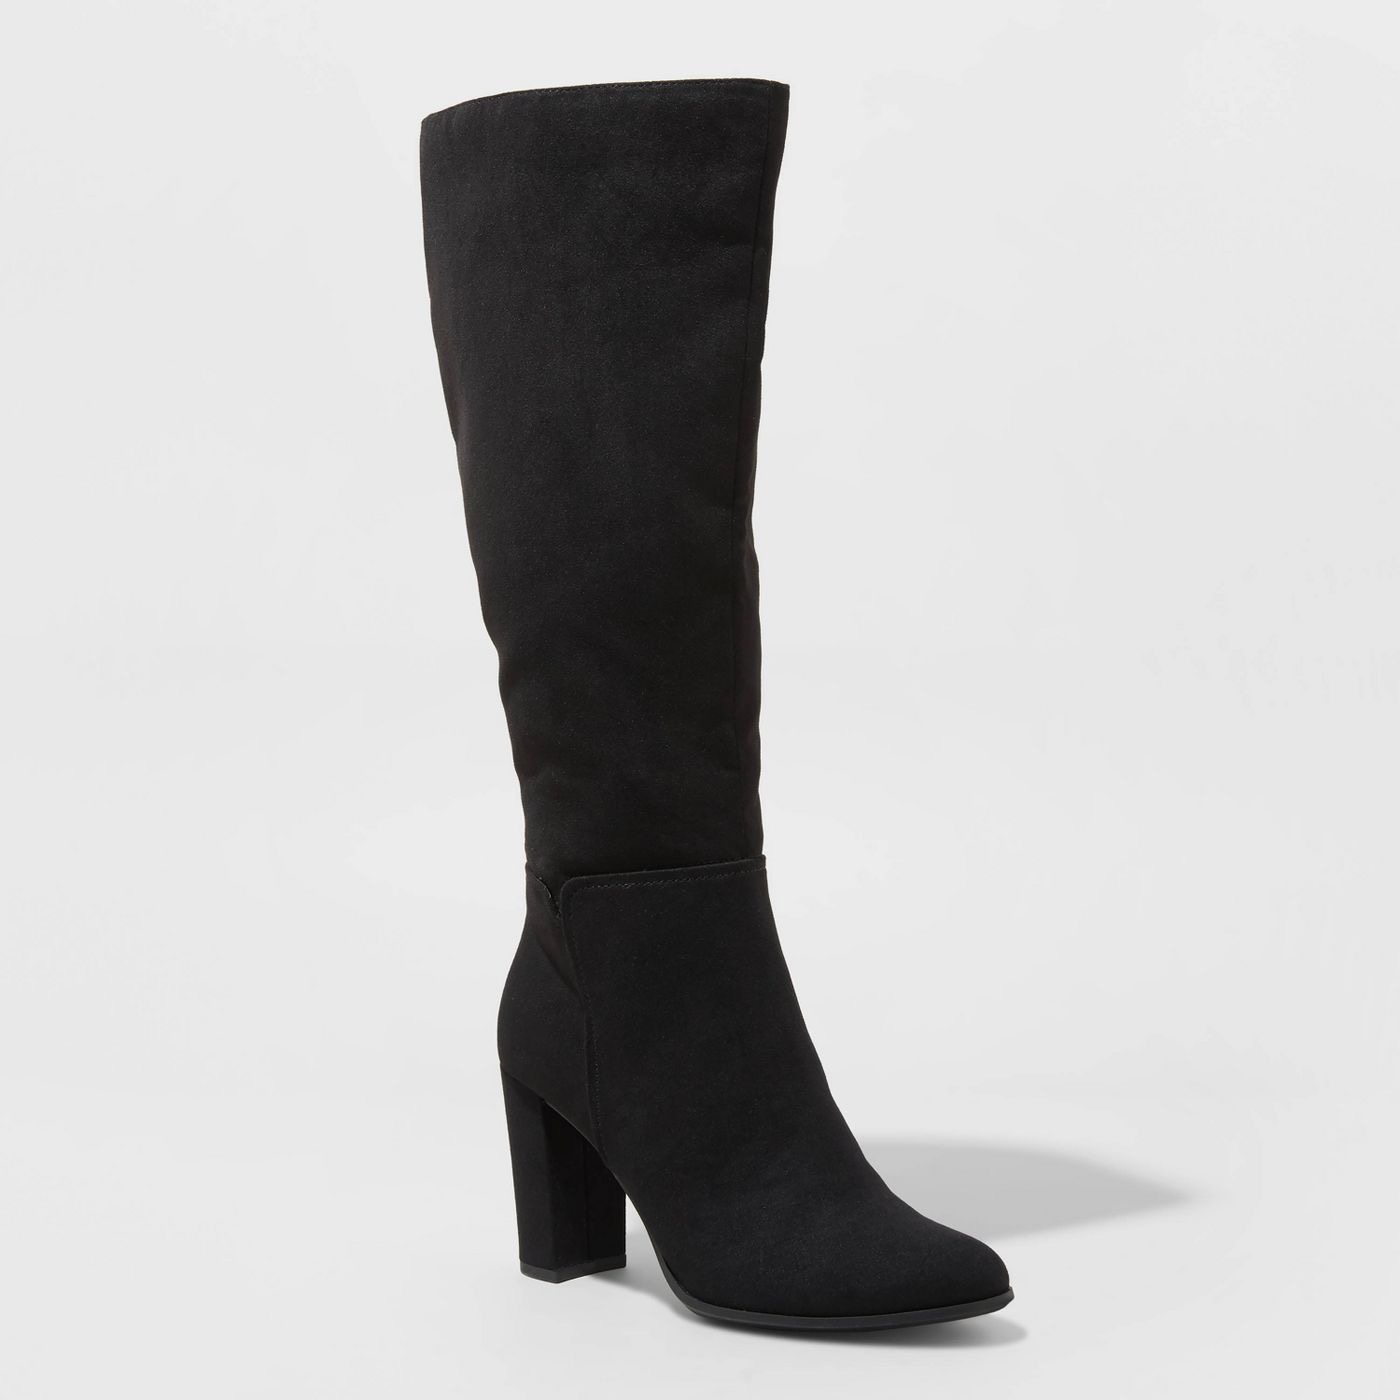 Women's Brandee Knee High Heeled Fashion Boots - A New Day